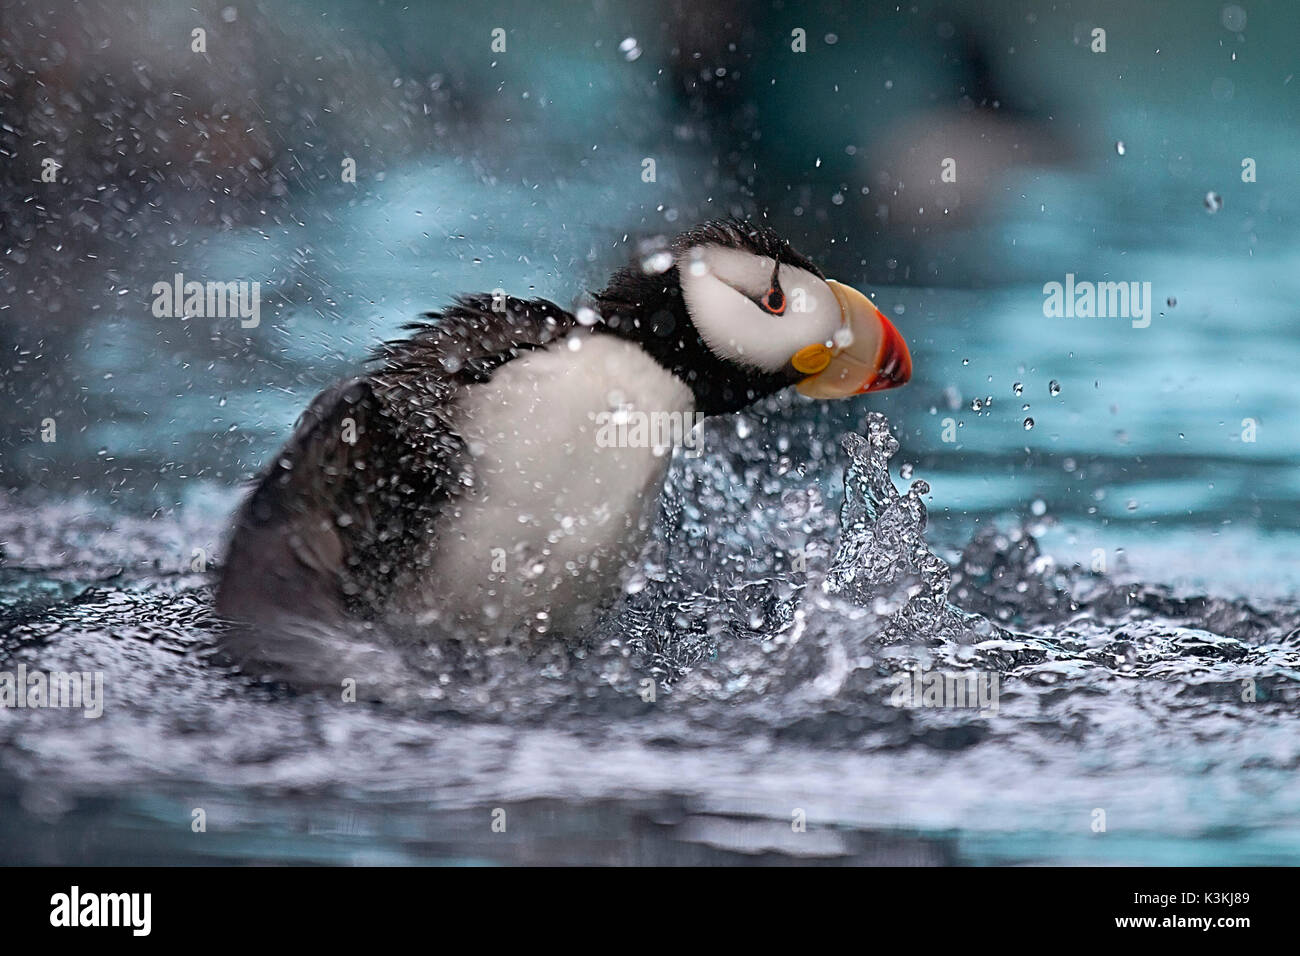 A puffin splashes into the water in the Kenai Fjords National park, Seward. - Stock Image